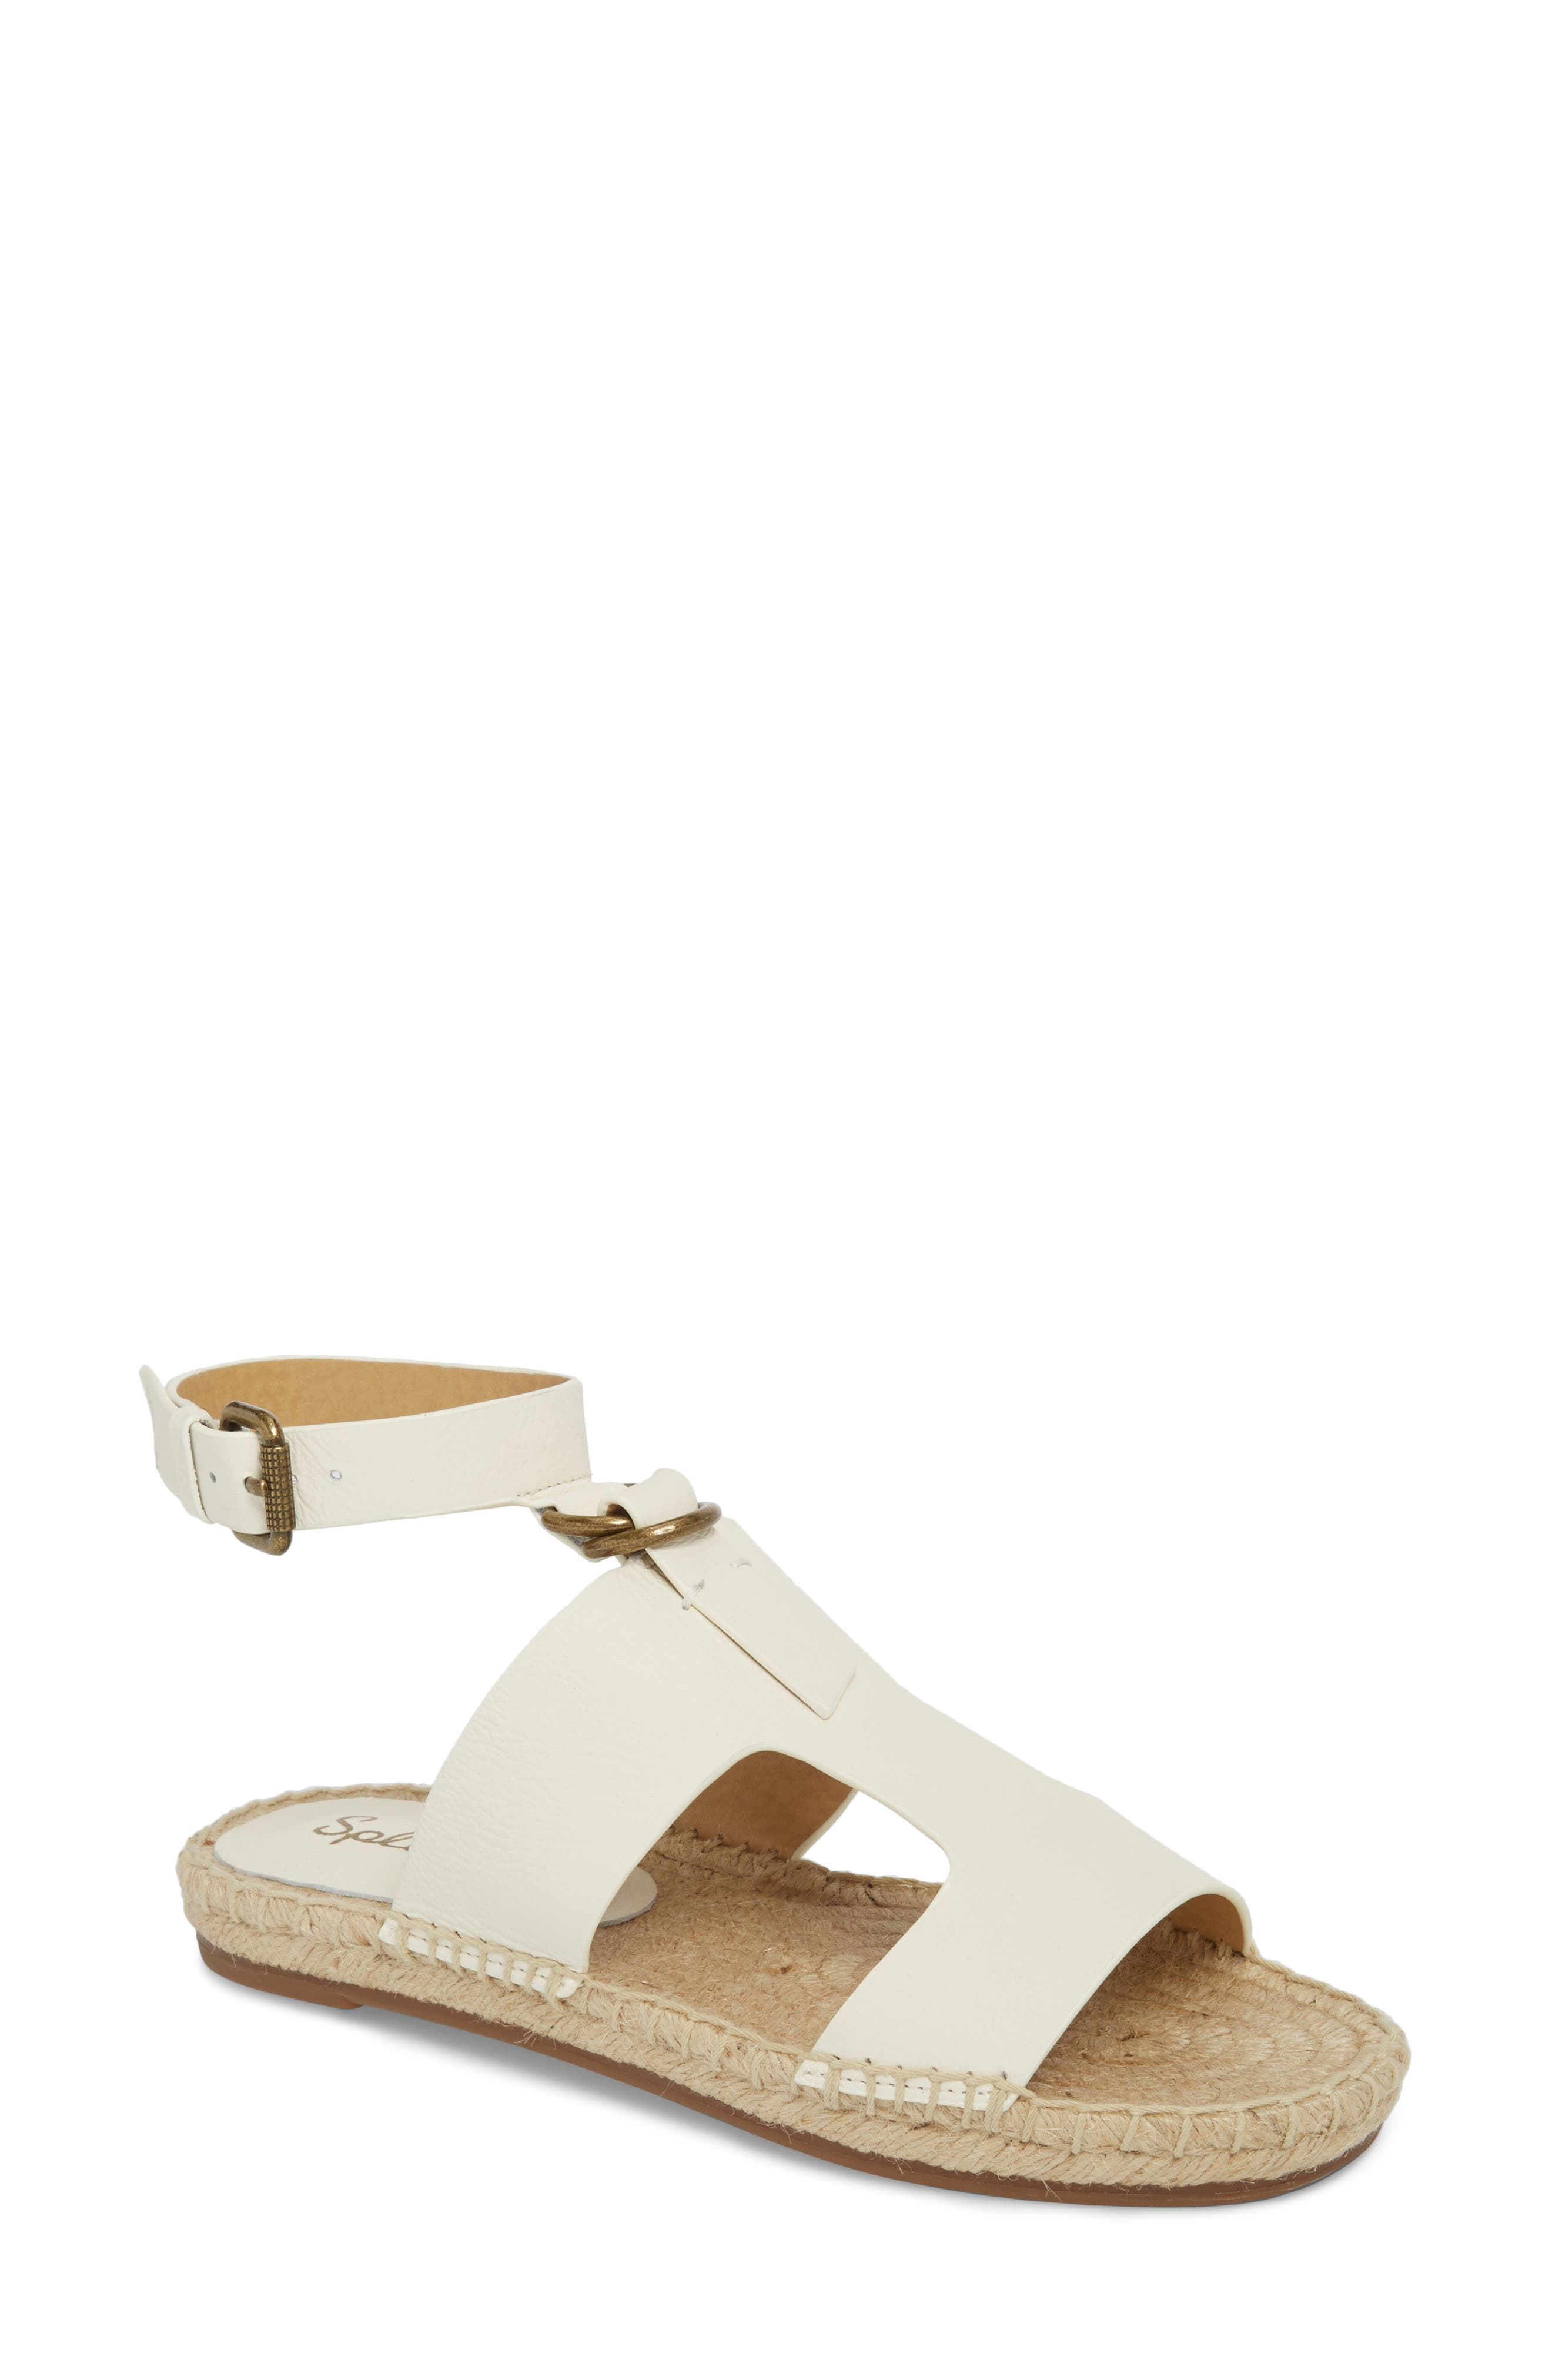 Farley Espadrille Sandal,                         Main,                         color, OFF WHITE LEATHER